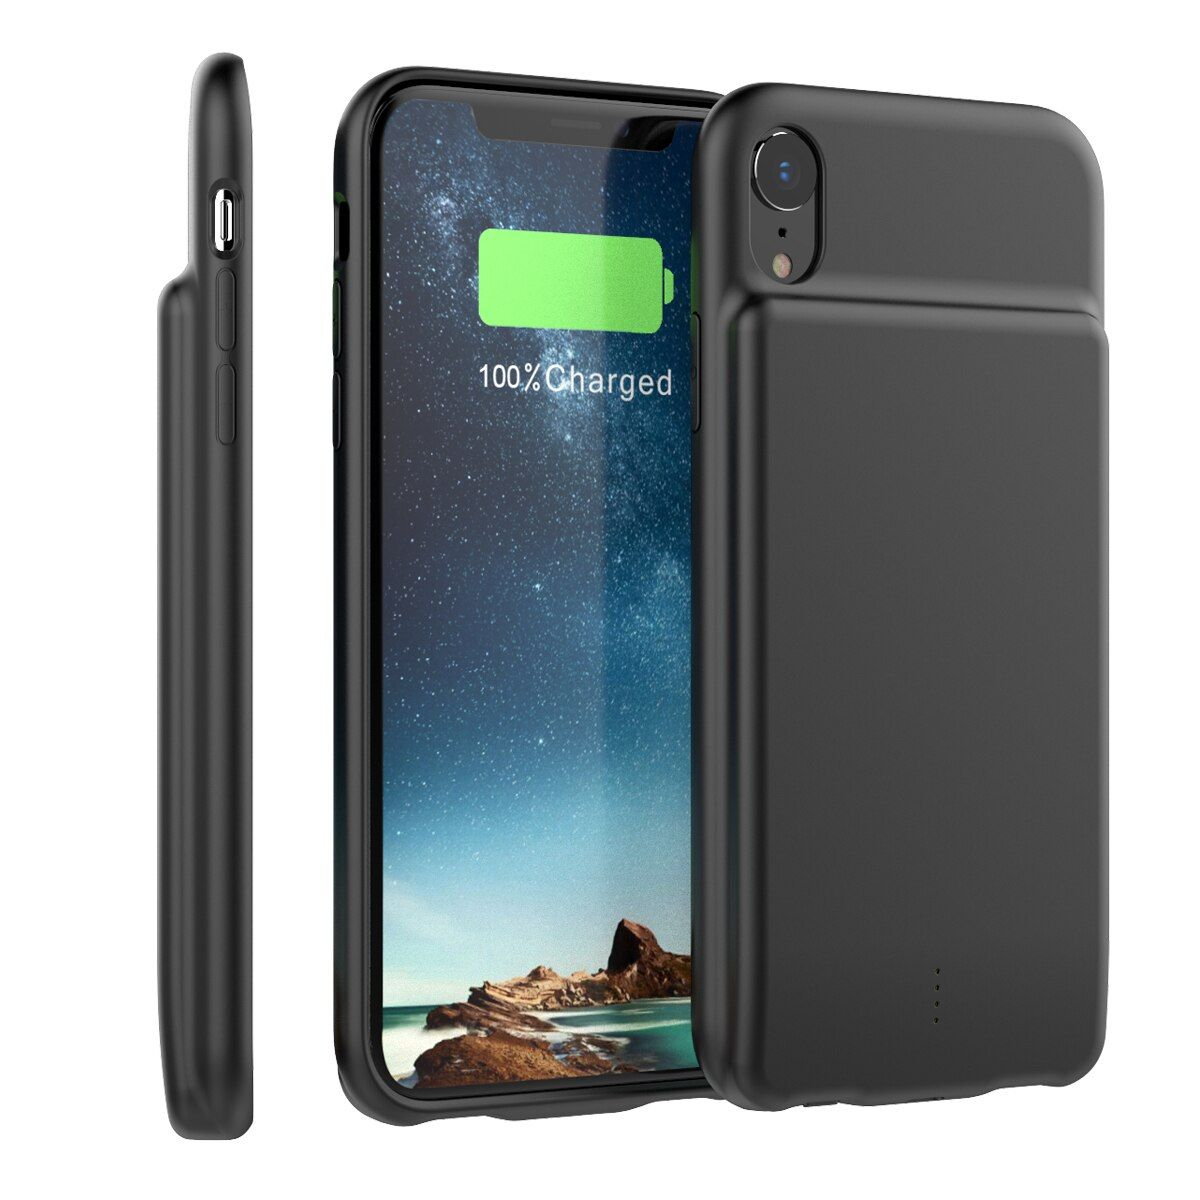 External 5000mah battery charger case for iphone xr with